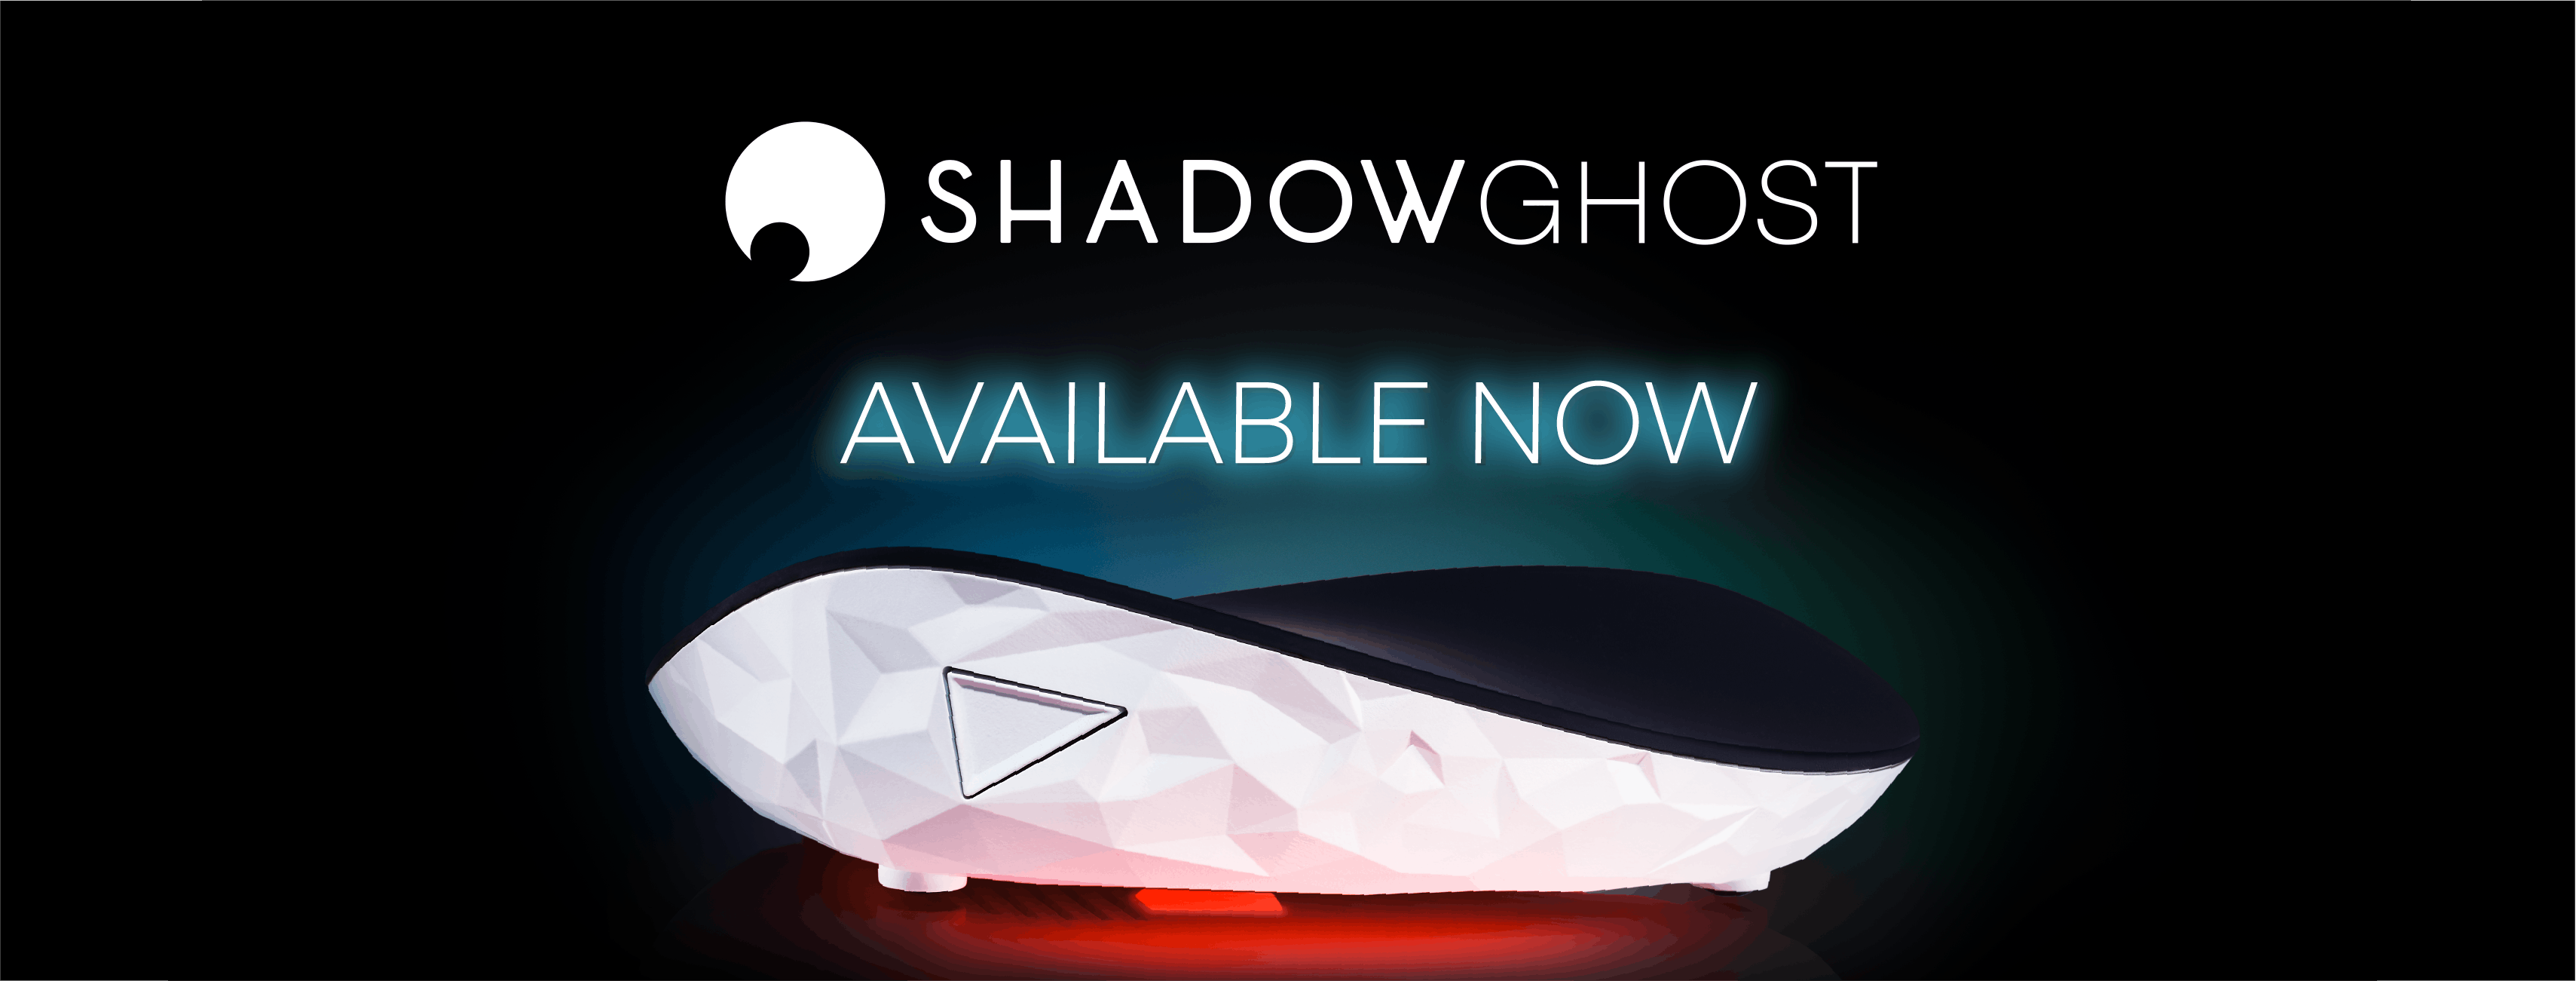 The Shadow Ghost is now available!